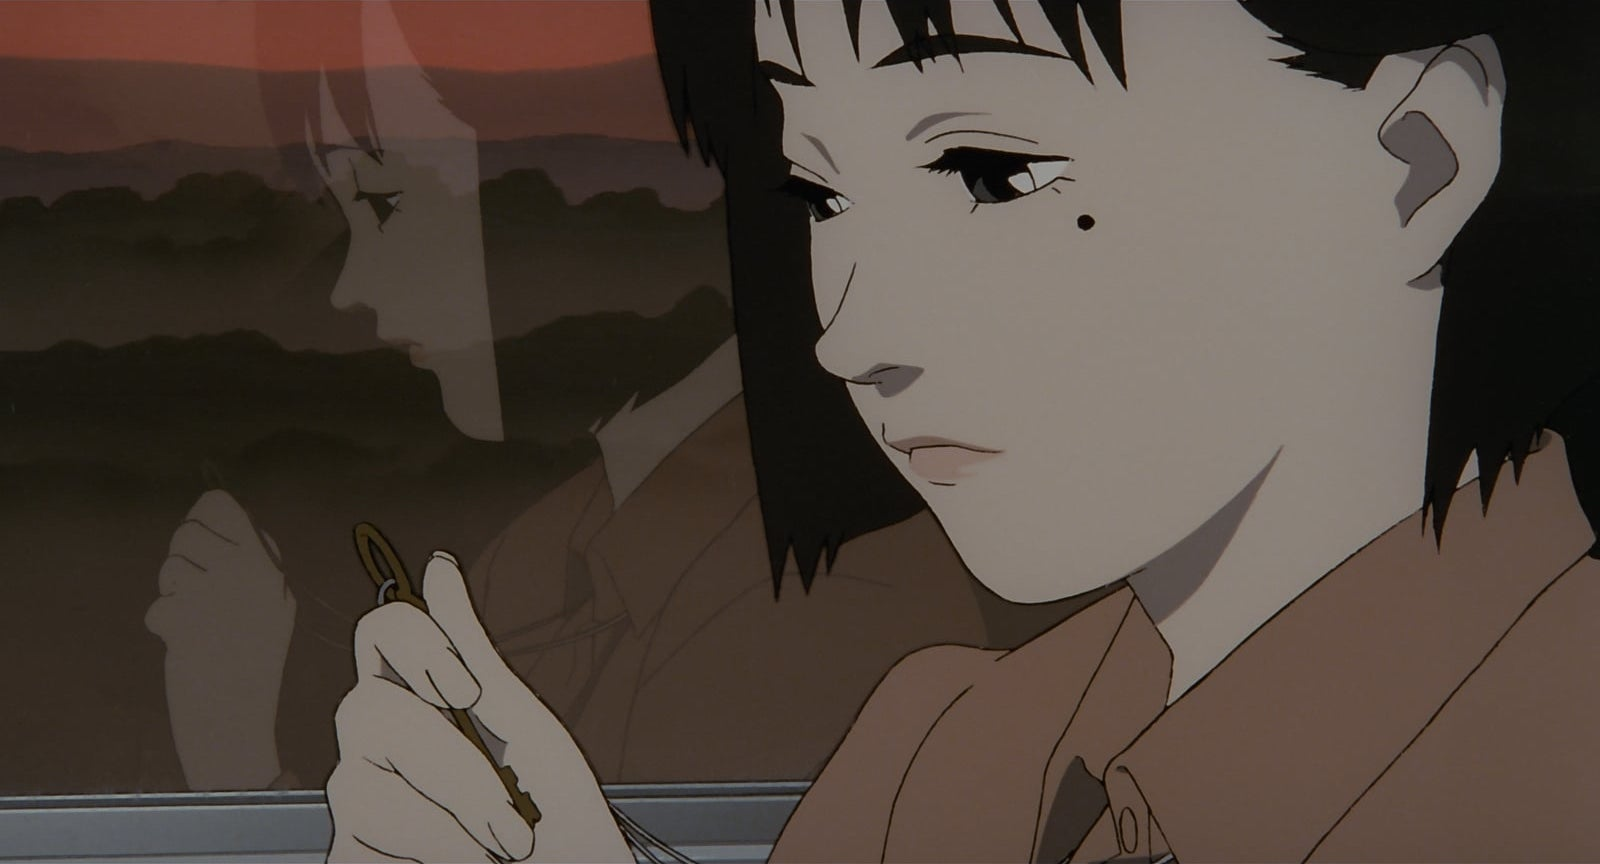 A young Chiyoko looking wistfully at a key in her hand.